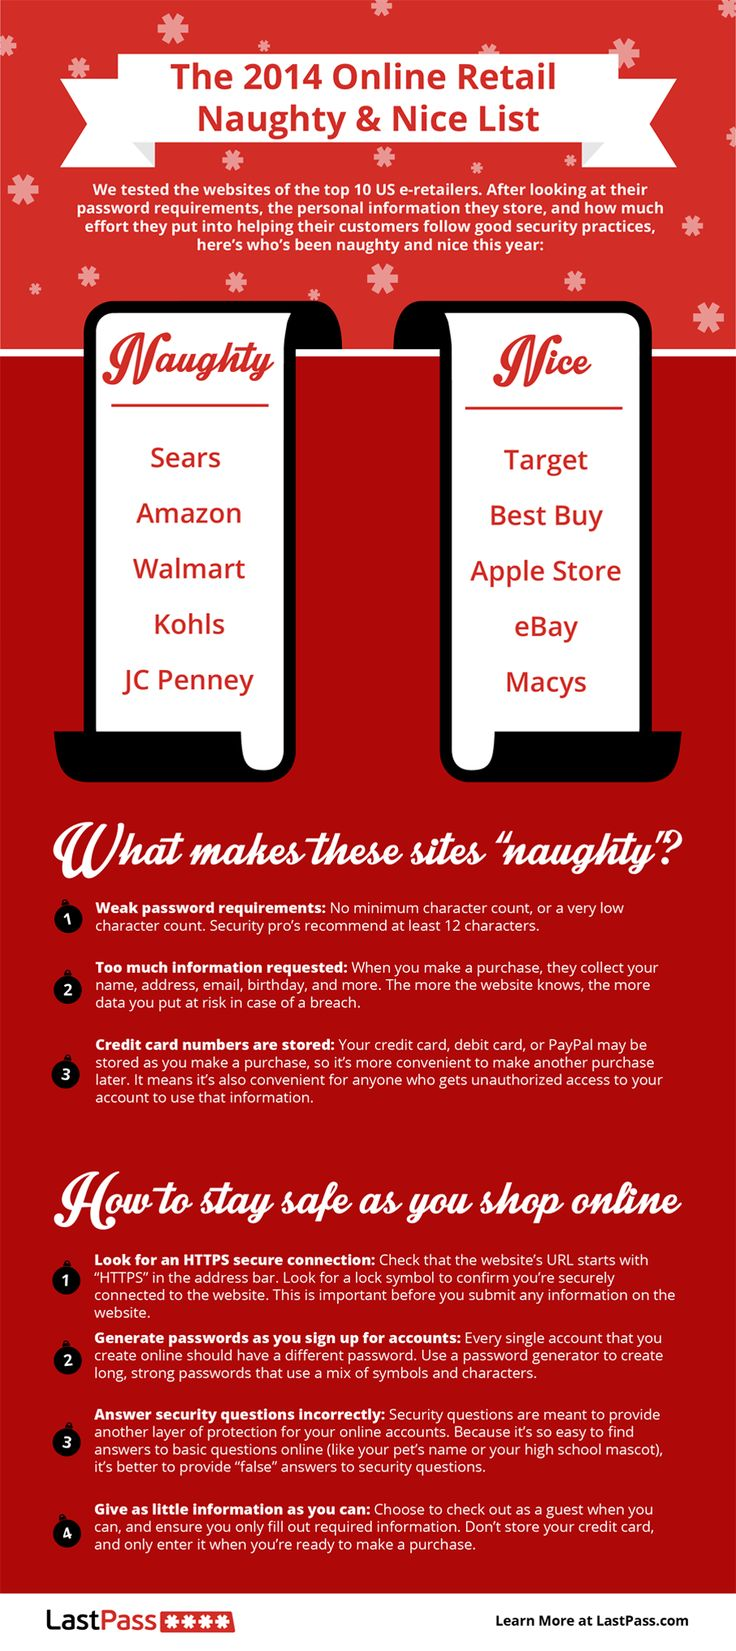 The 2014 Online Retail Naughty & Nice List